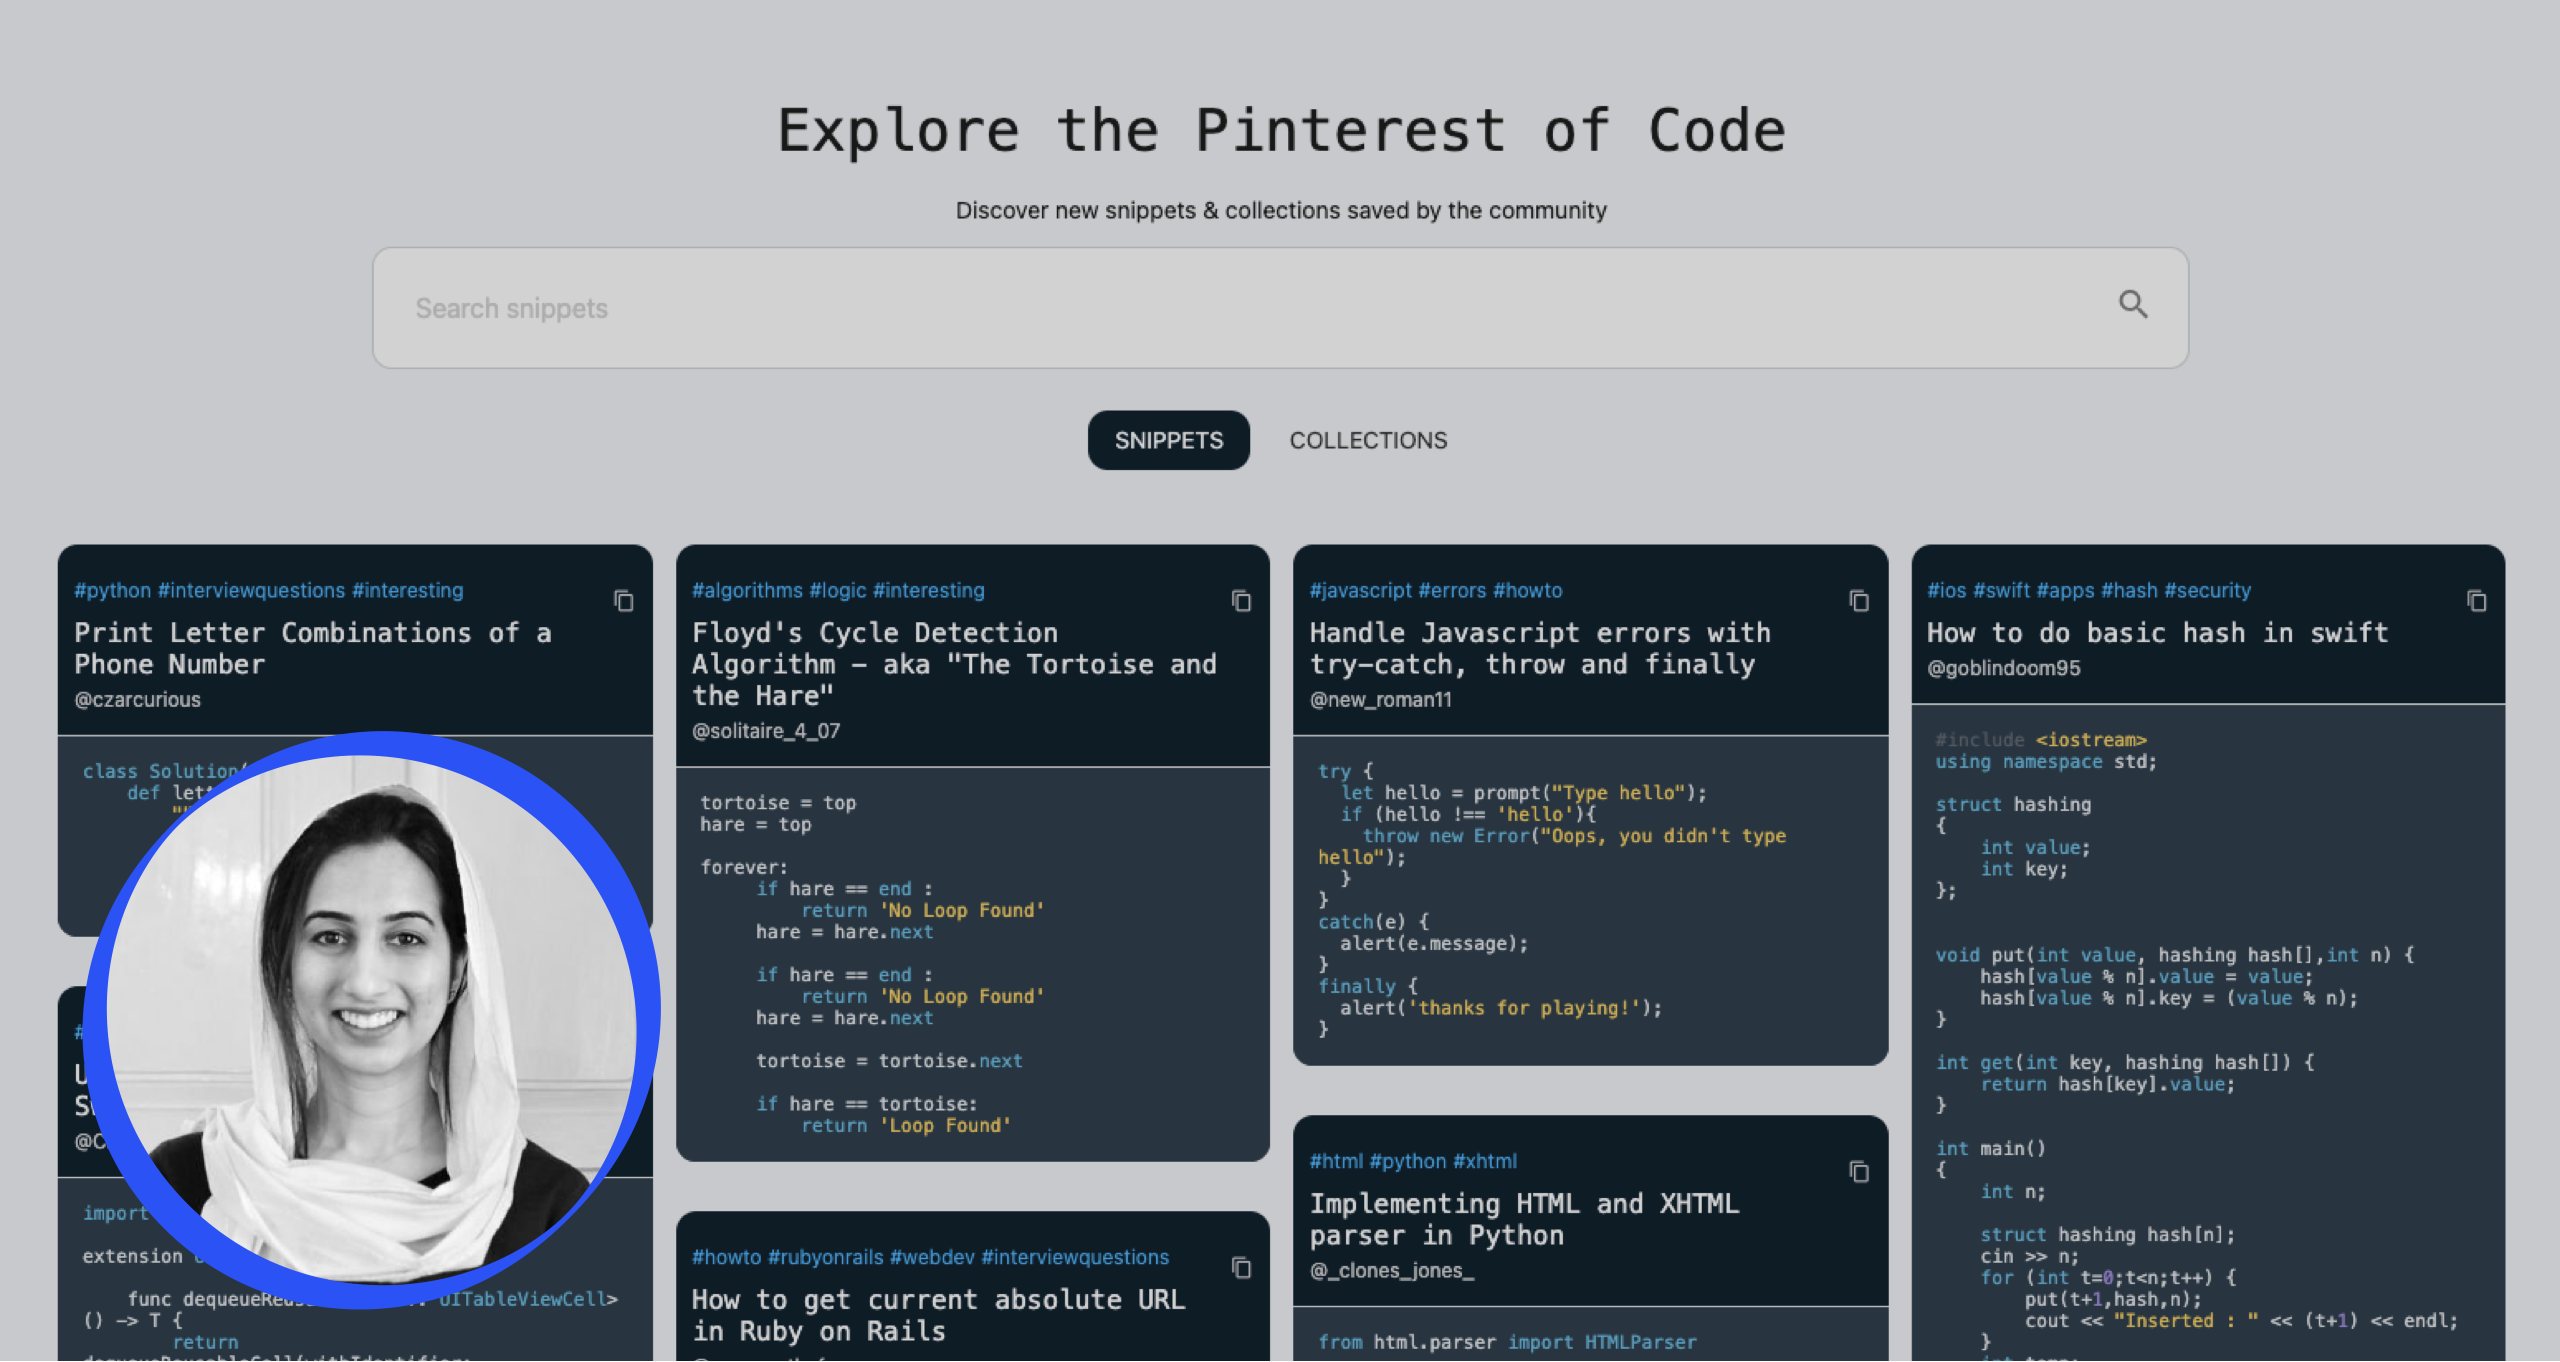 Meet Mishka, an early adopter of Taskable, and founder of thiscodeworks, the Pinterest of code.